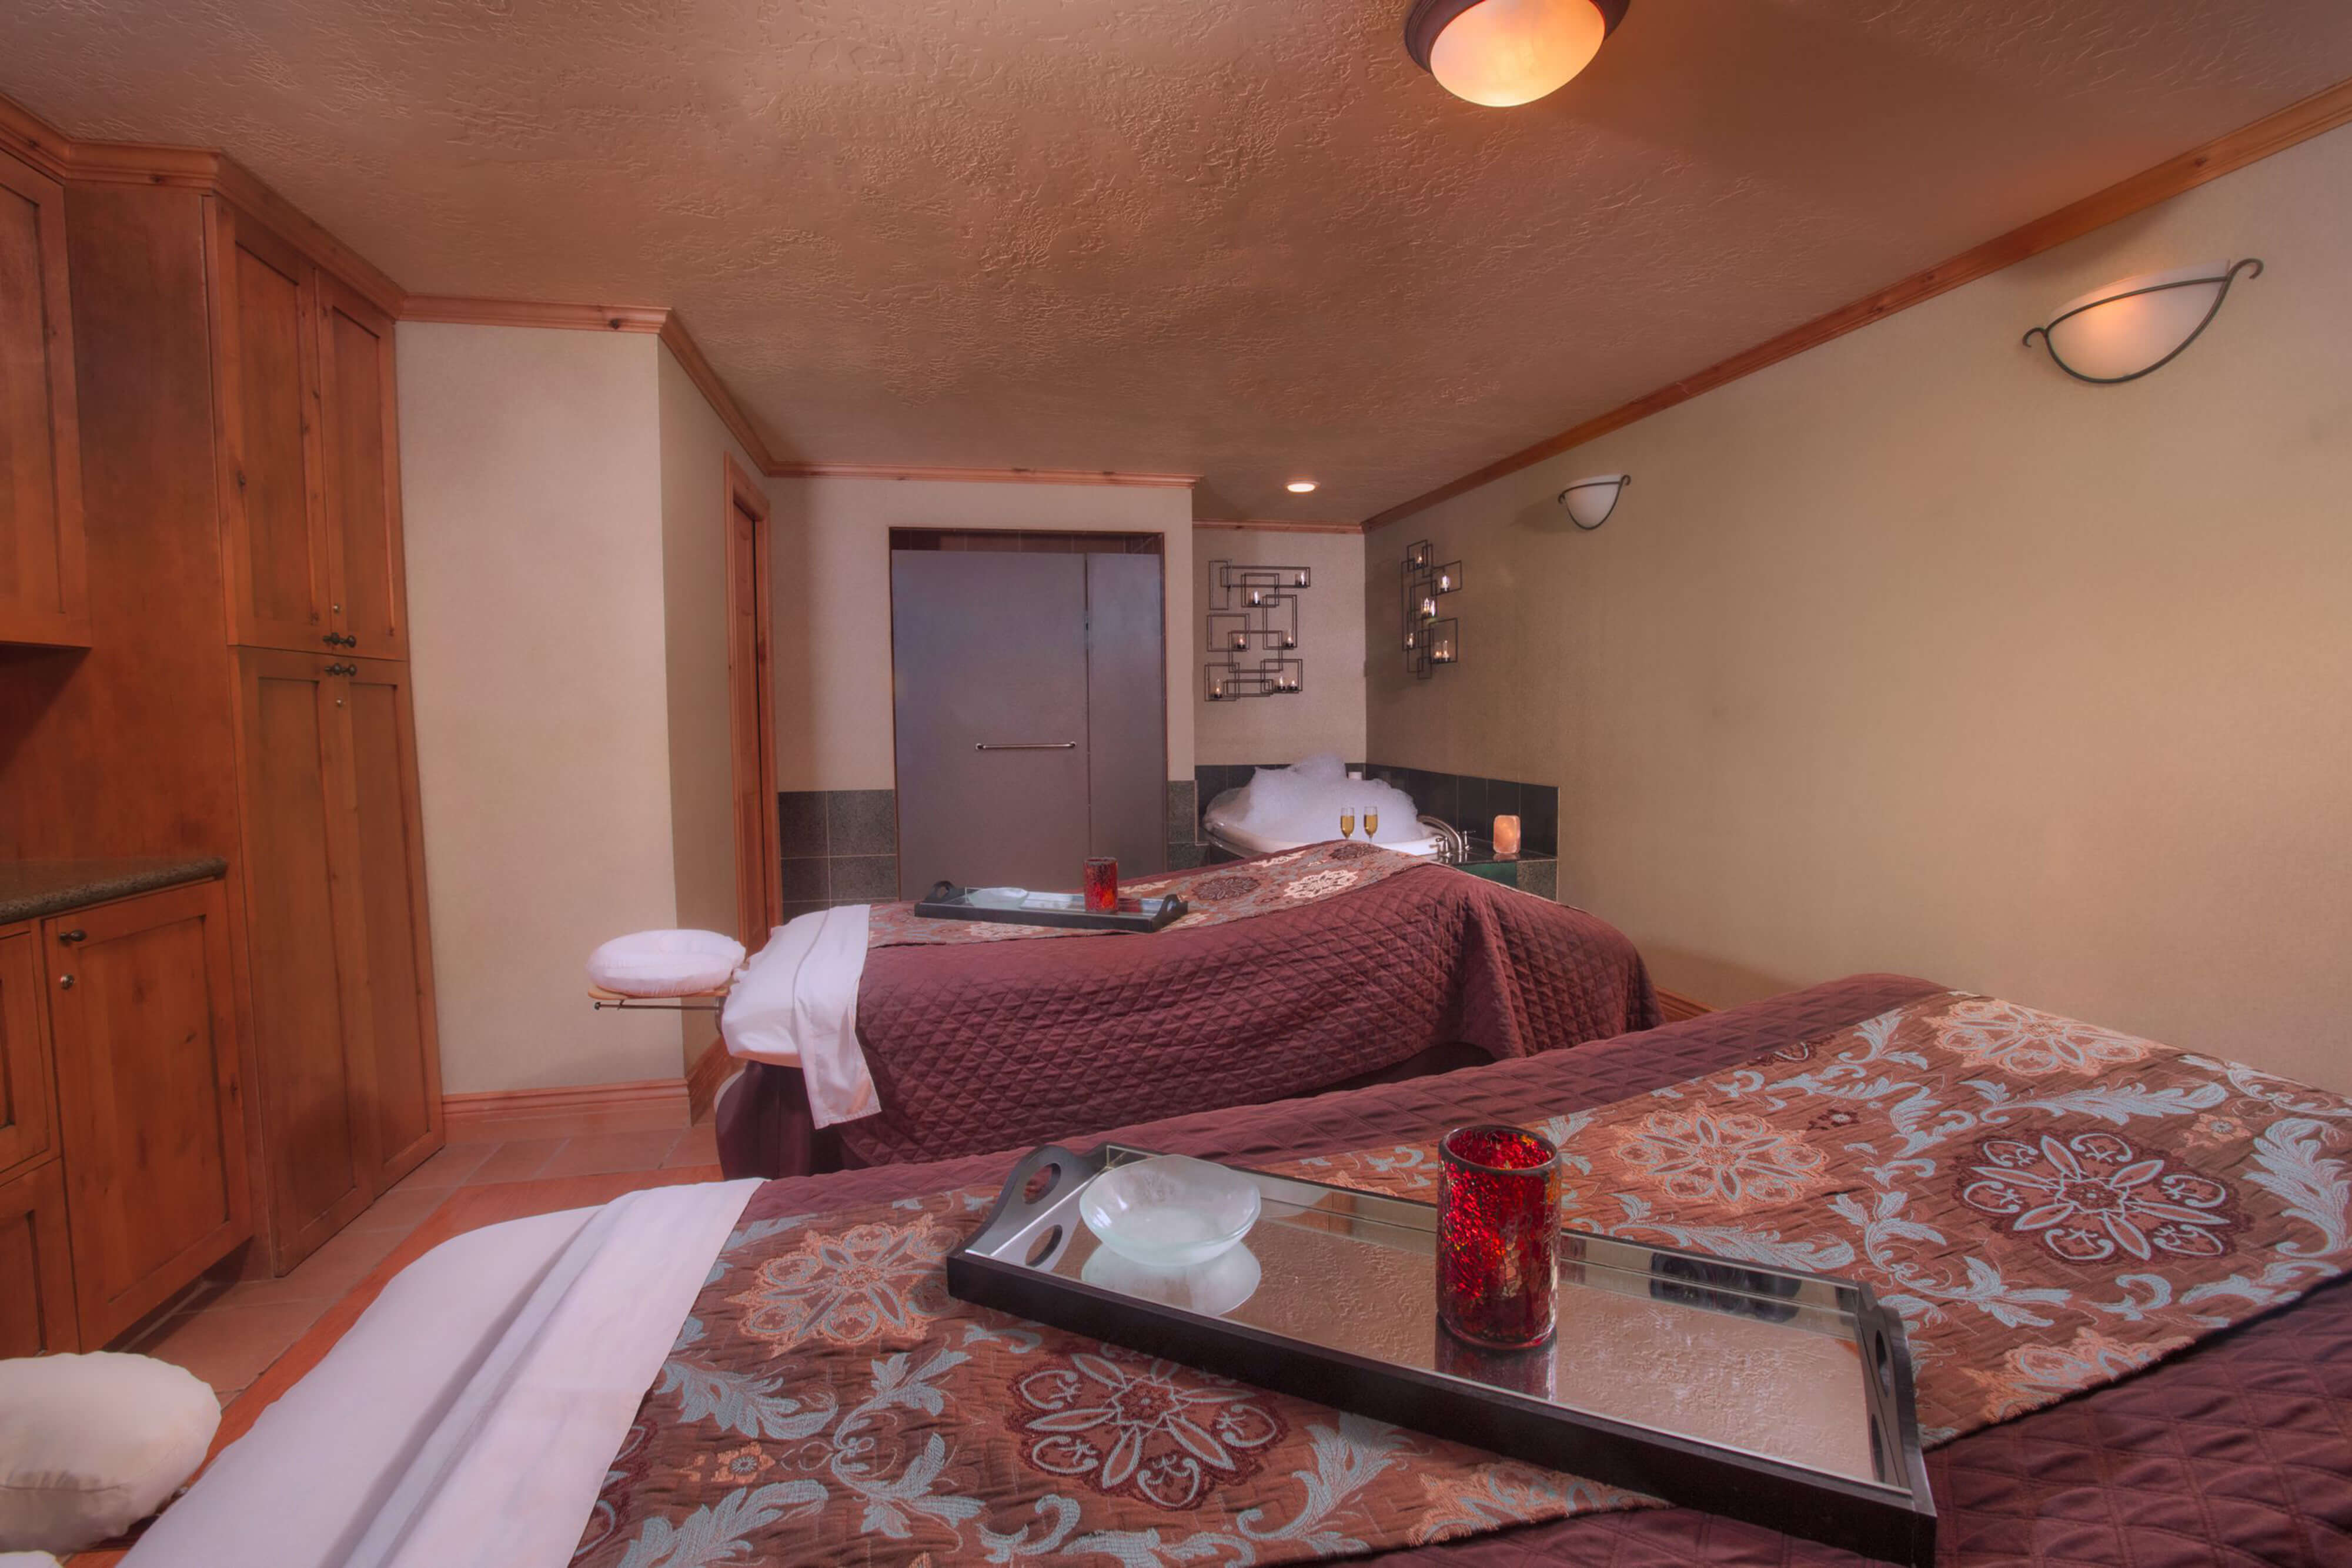 Serenity Spa Treatments & Massage in Park City Utah | Westgate Park City Resort & Spa | Westgate Resorts